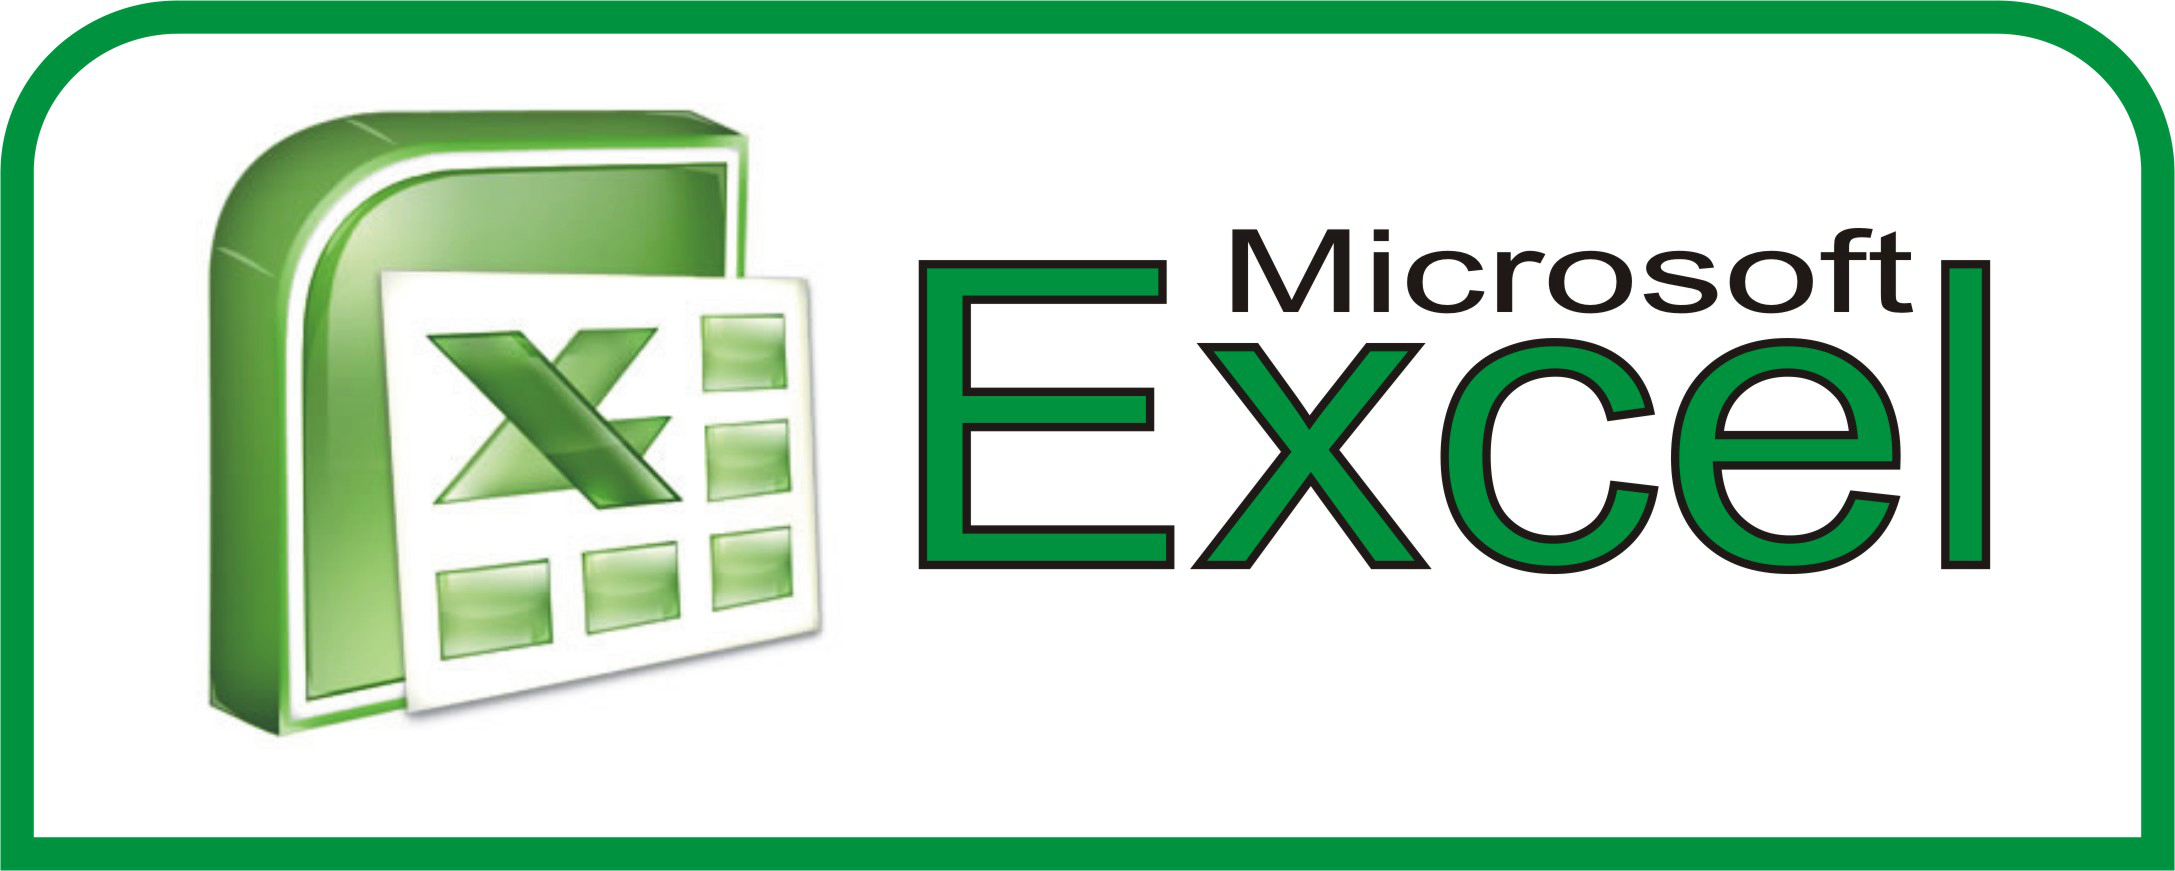 Ediblewildsus  Gorgeous  Excel Shortcuts You Probably Didnt Know About  Techdissected With Goodlooking Removing Duplicate Rows In Excel Besides Excel Module Furthermore Excel Learning Center El Paso With Nice How To View Macros In Excel Also Excel Templates Calendar In Addition Excel Formula Concatenate And Z Table Excel As Well As Excel Bi Additionally If True Excel From Techdissectedcom With Ediblewildsus  Goodlooking  Excel Shortcuts You Probably Didnt Know About  Techdissected With Nice Removing Duplicate Rows In Excel Besides Excel Module Furthermore Excel Learning Center El Paso And Gorgeous How To View Macros In Excel Also Excel Templates Calendar In Addition Excel Formula Concatenate From Techdissectedcom